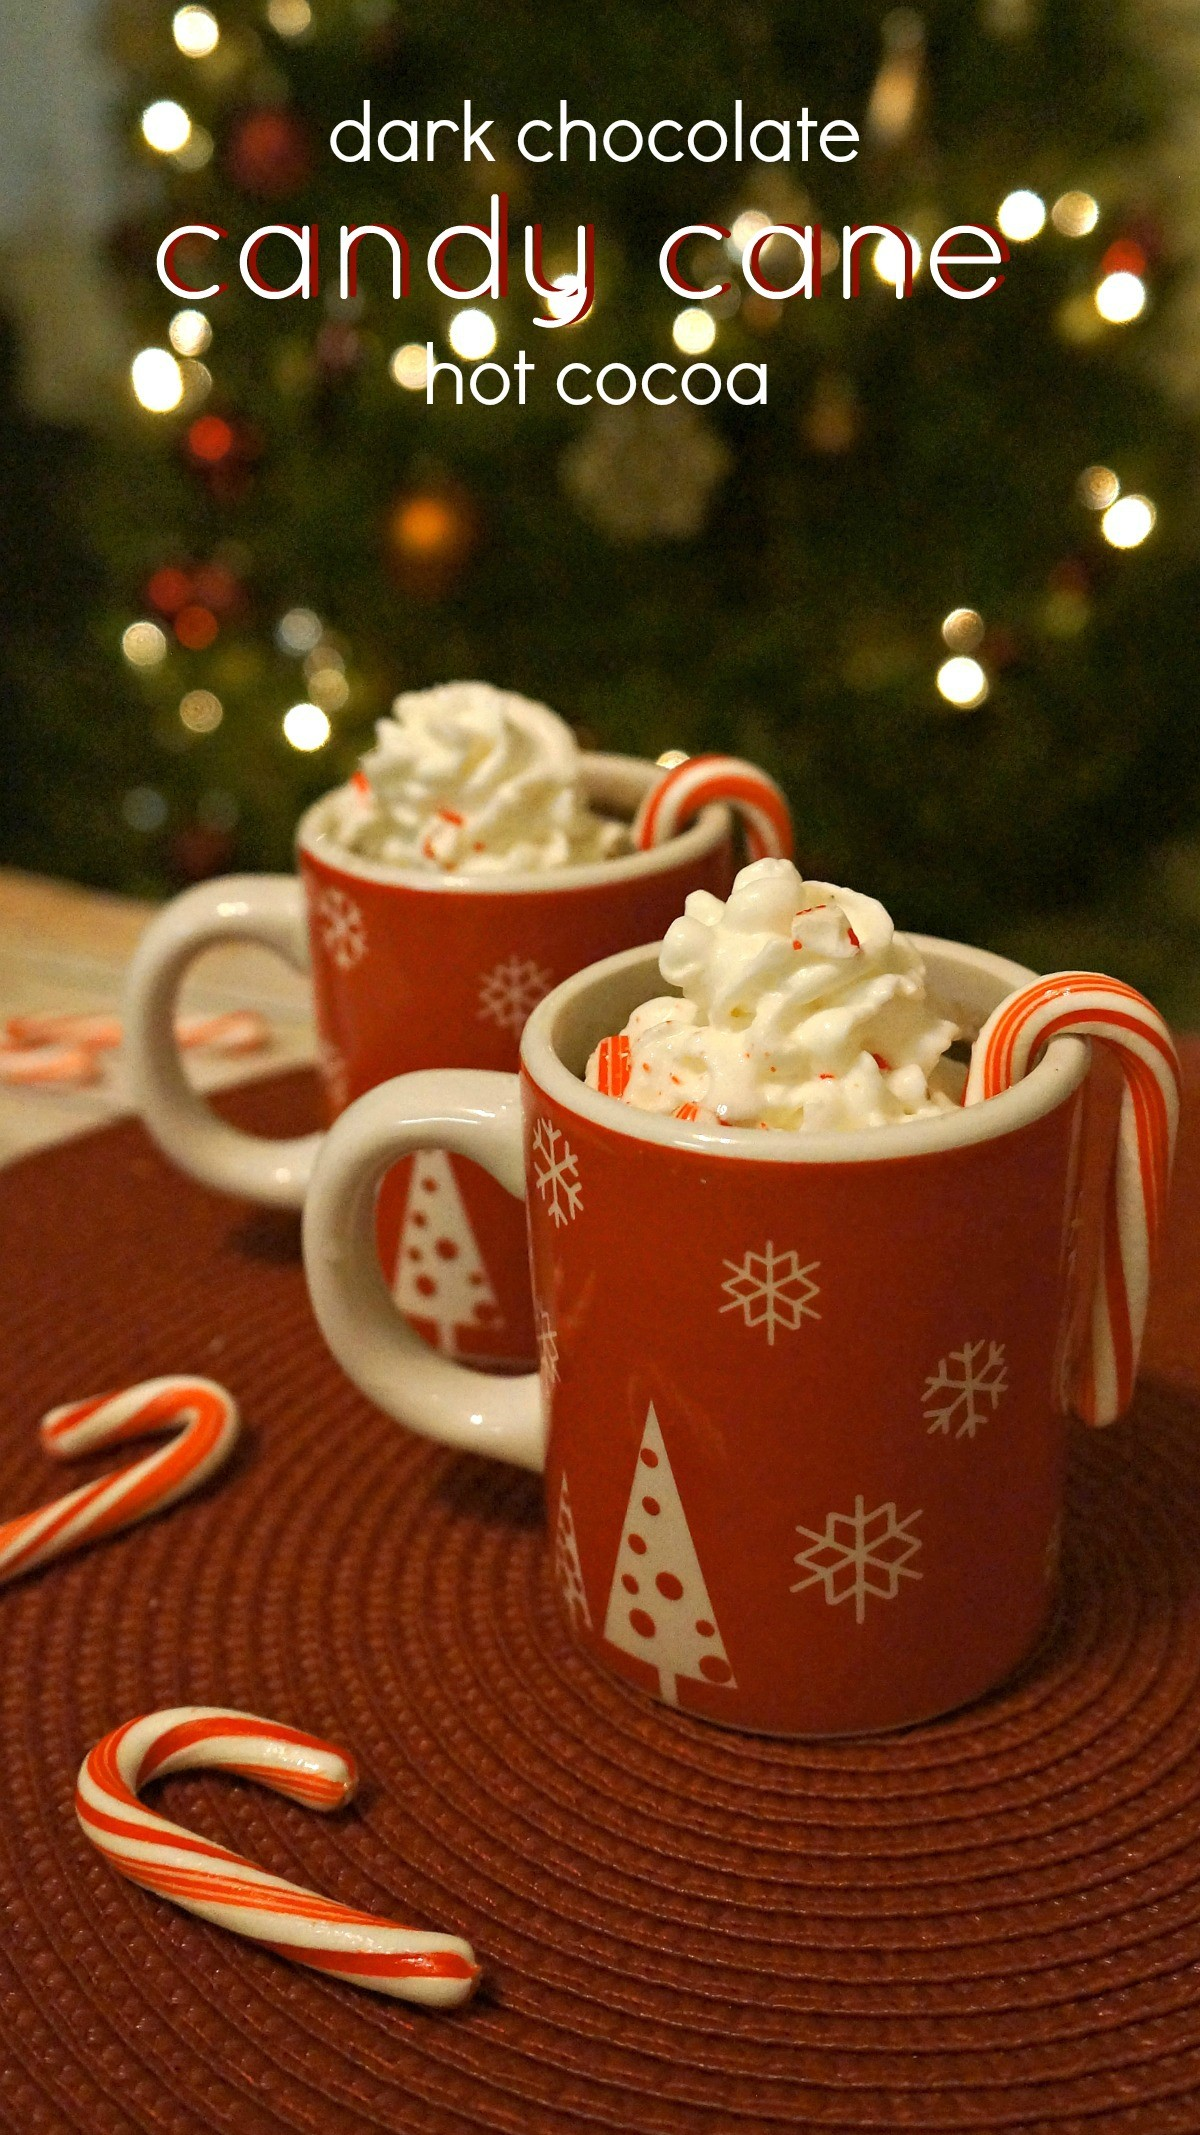 Homemade peppermint hot chocolate recipe - The holidays are here, which means we're making our favorite homemade peppermint hot chocolate! This is our favorite hot chocolate recipe from scratch!